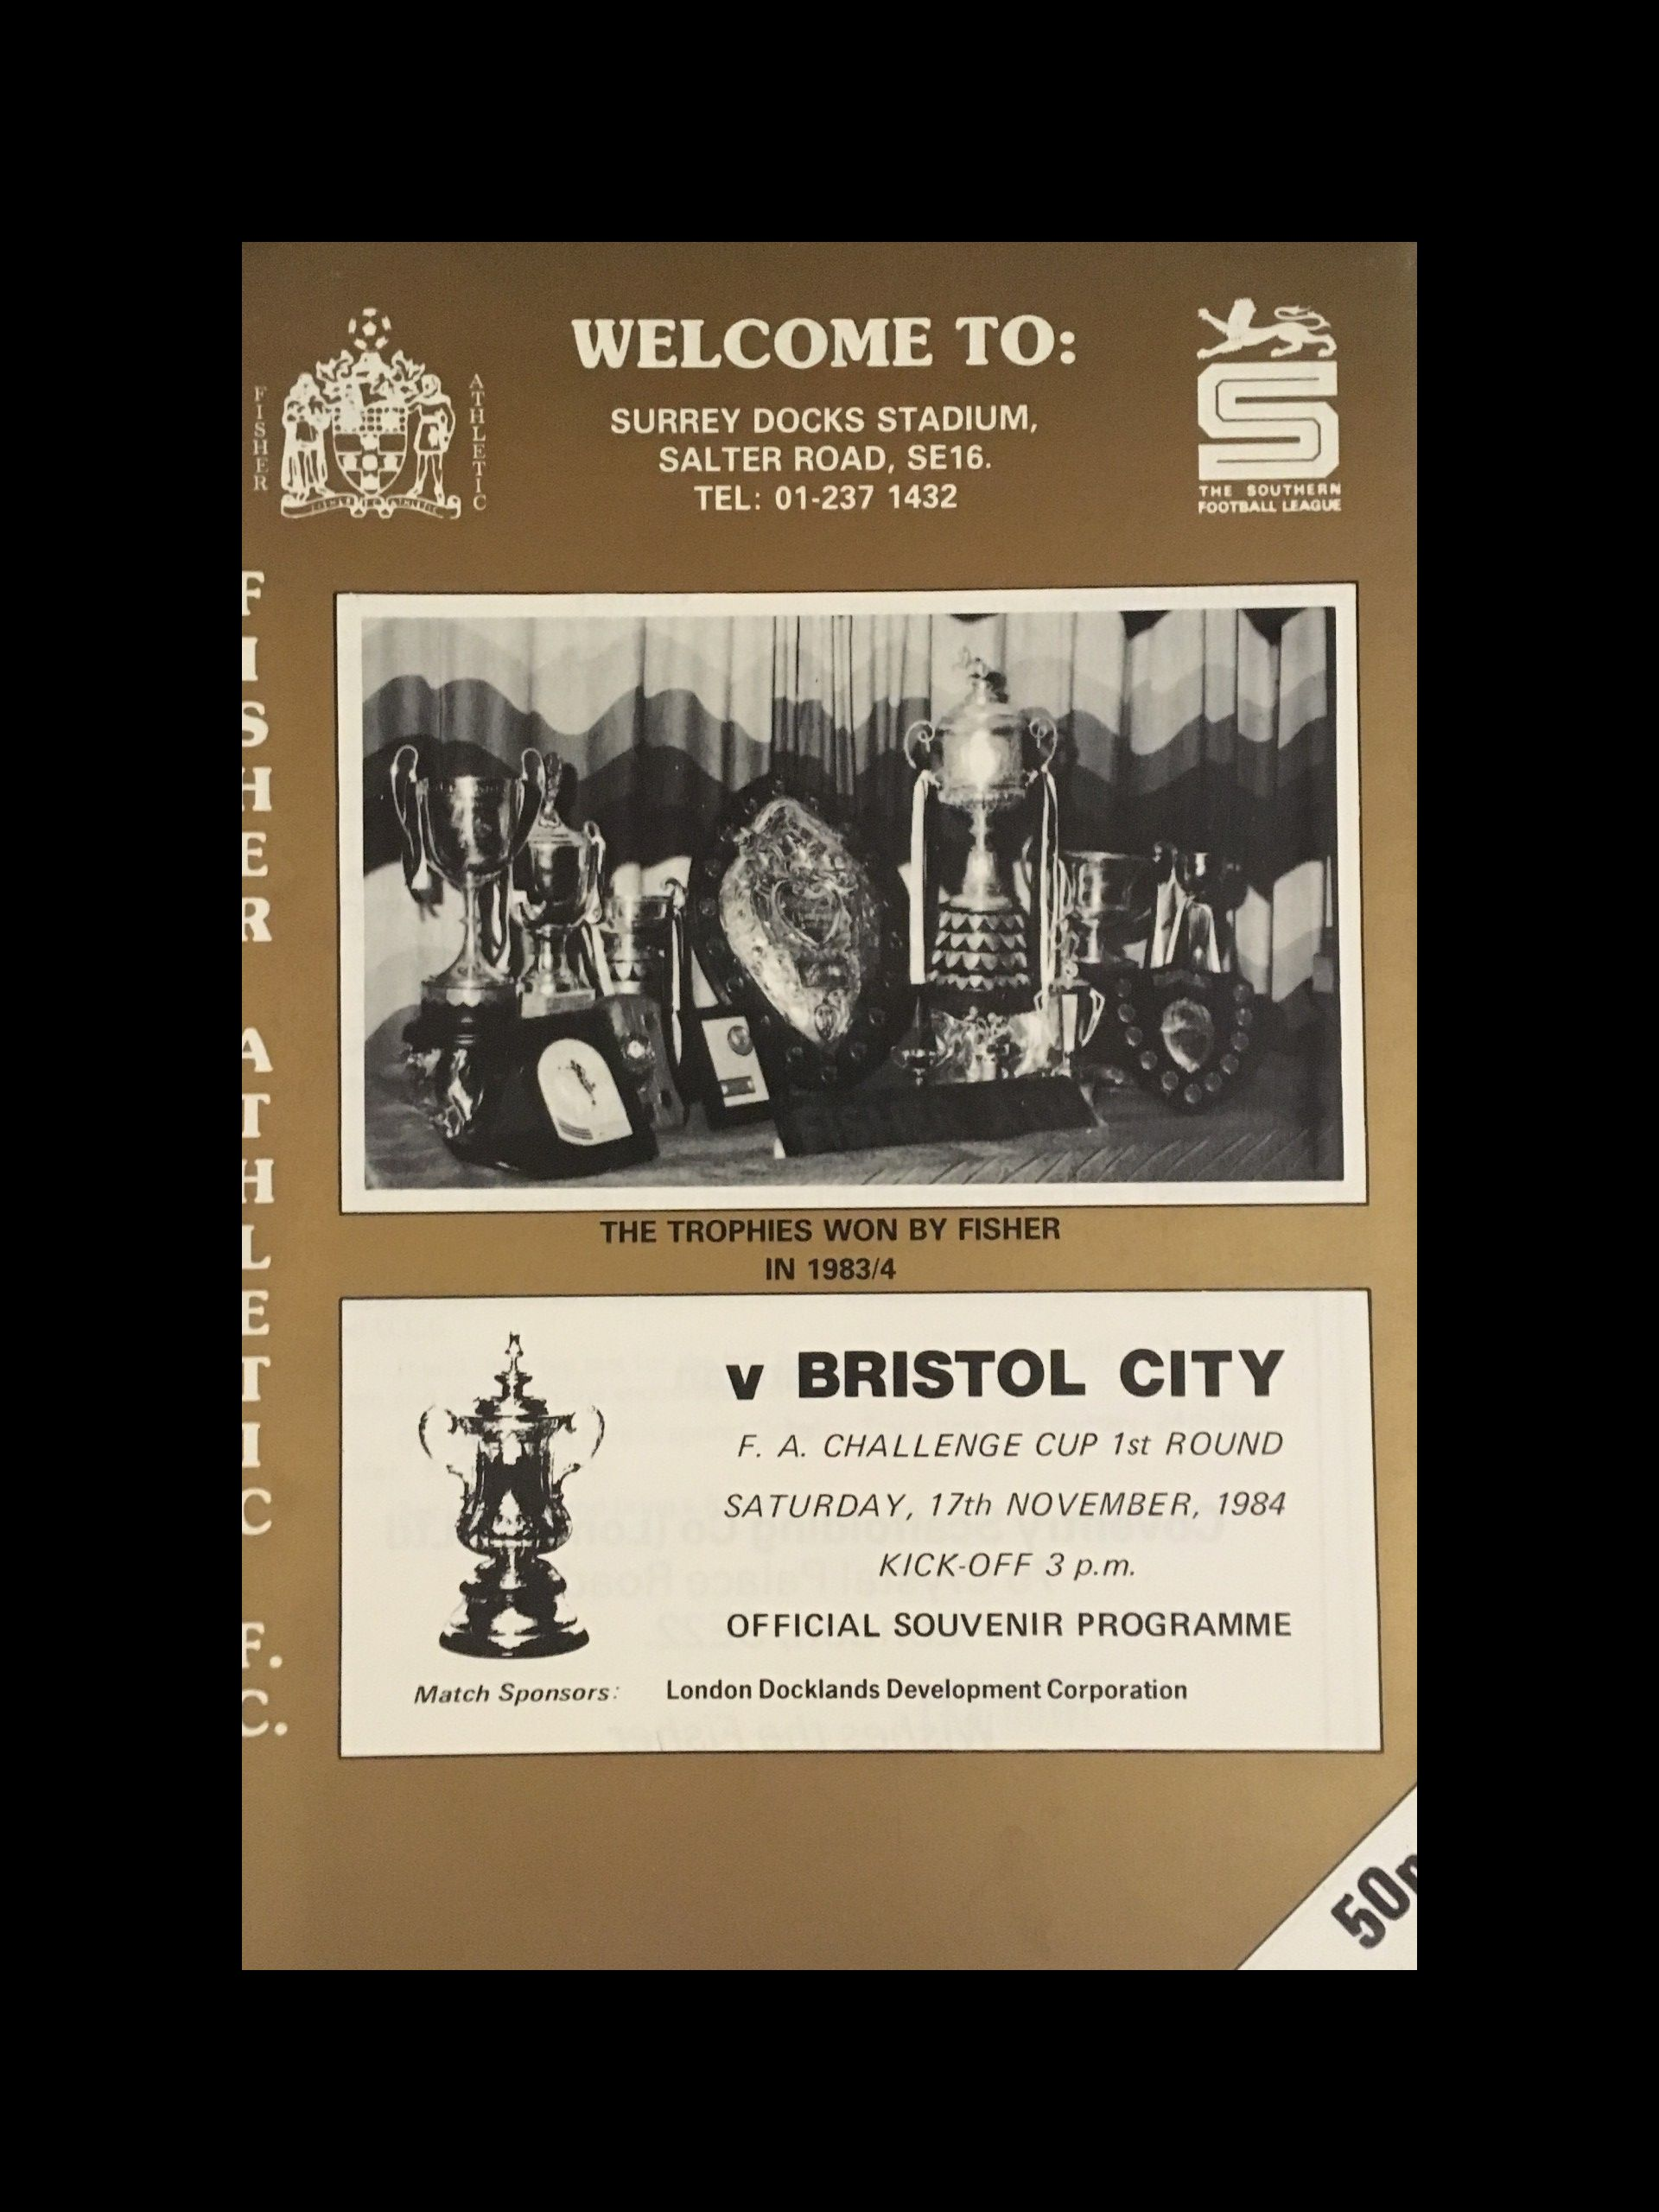 Fisher Athletic v Bristol City 17-11-84 Programme